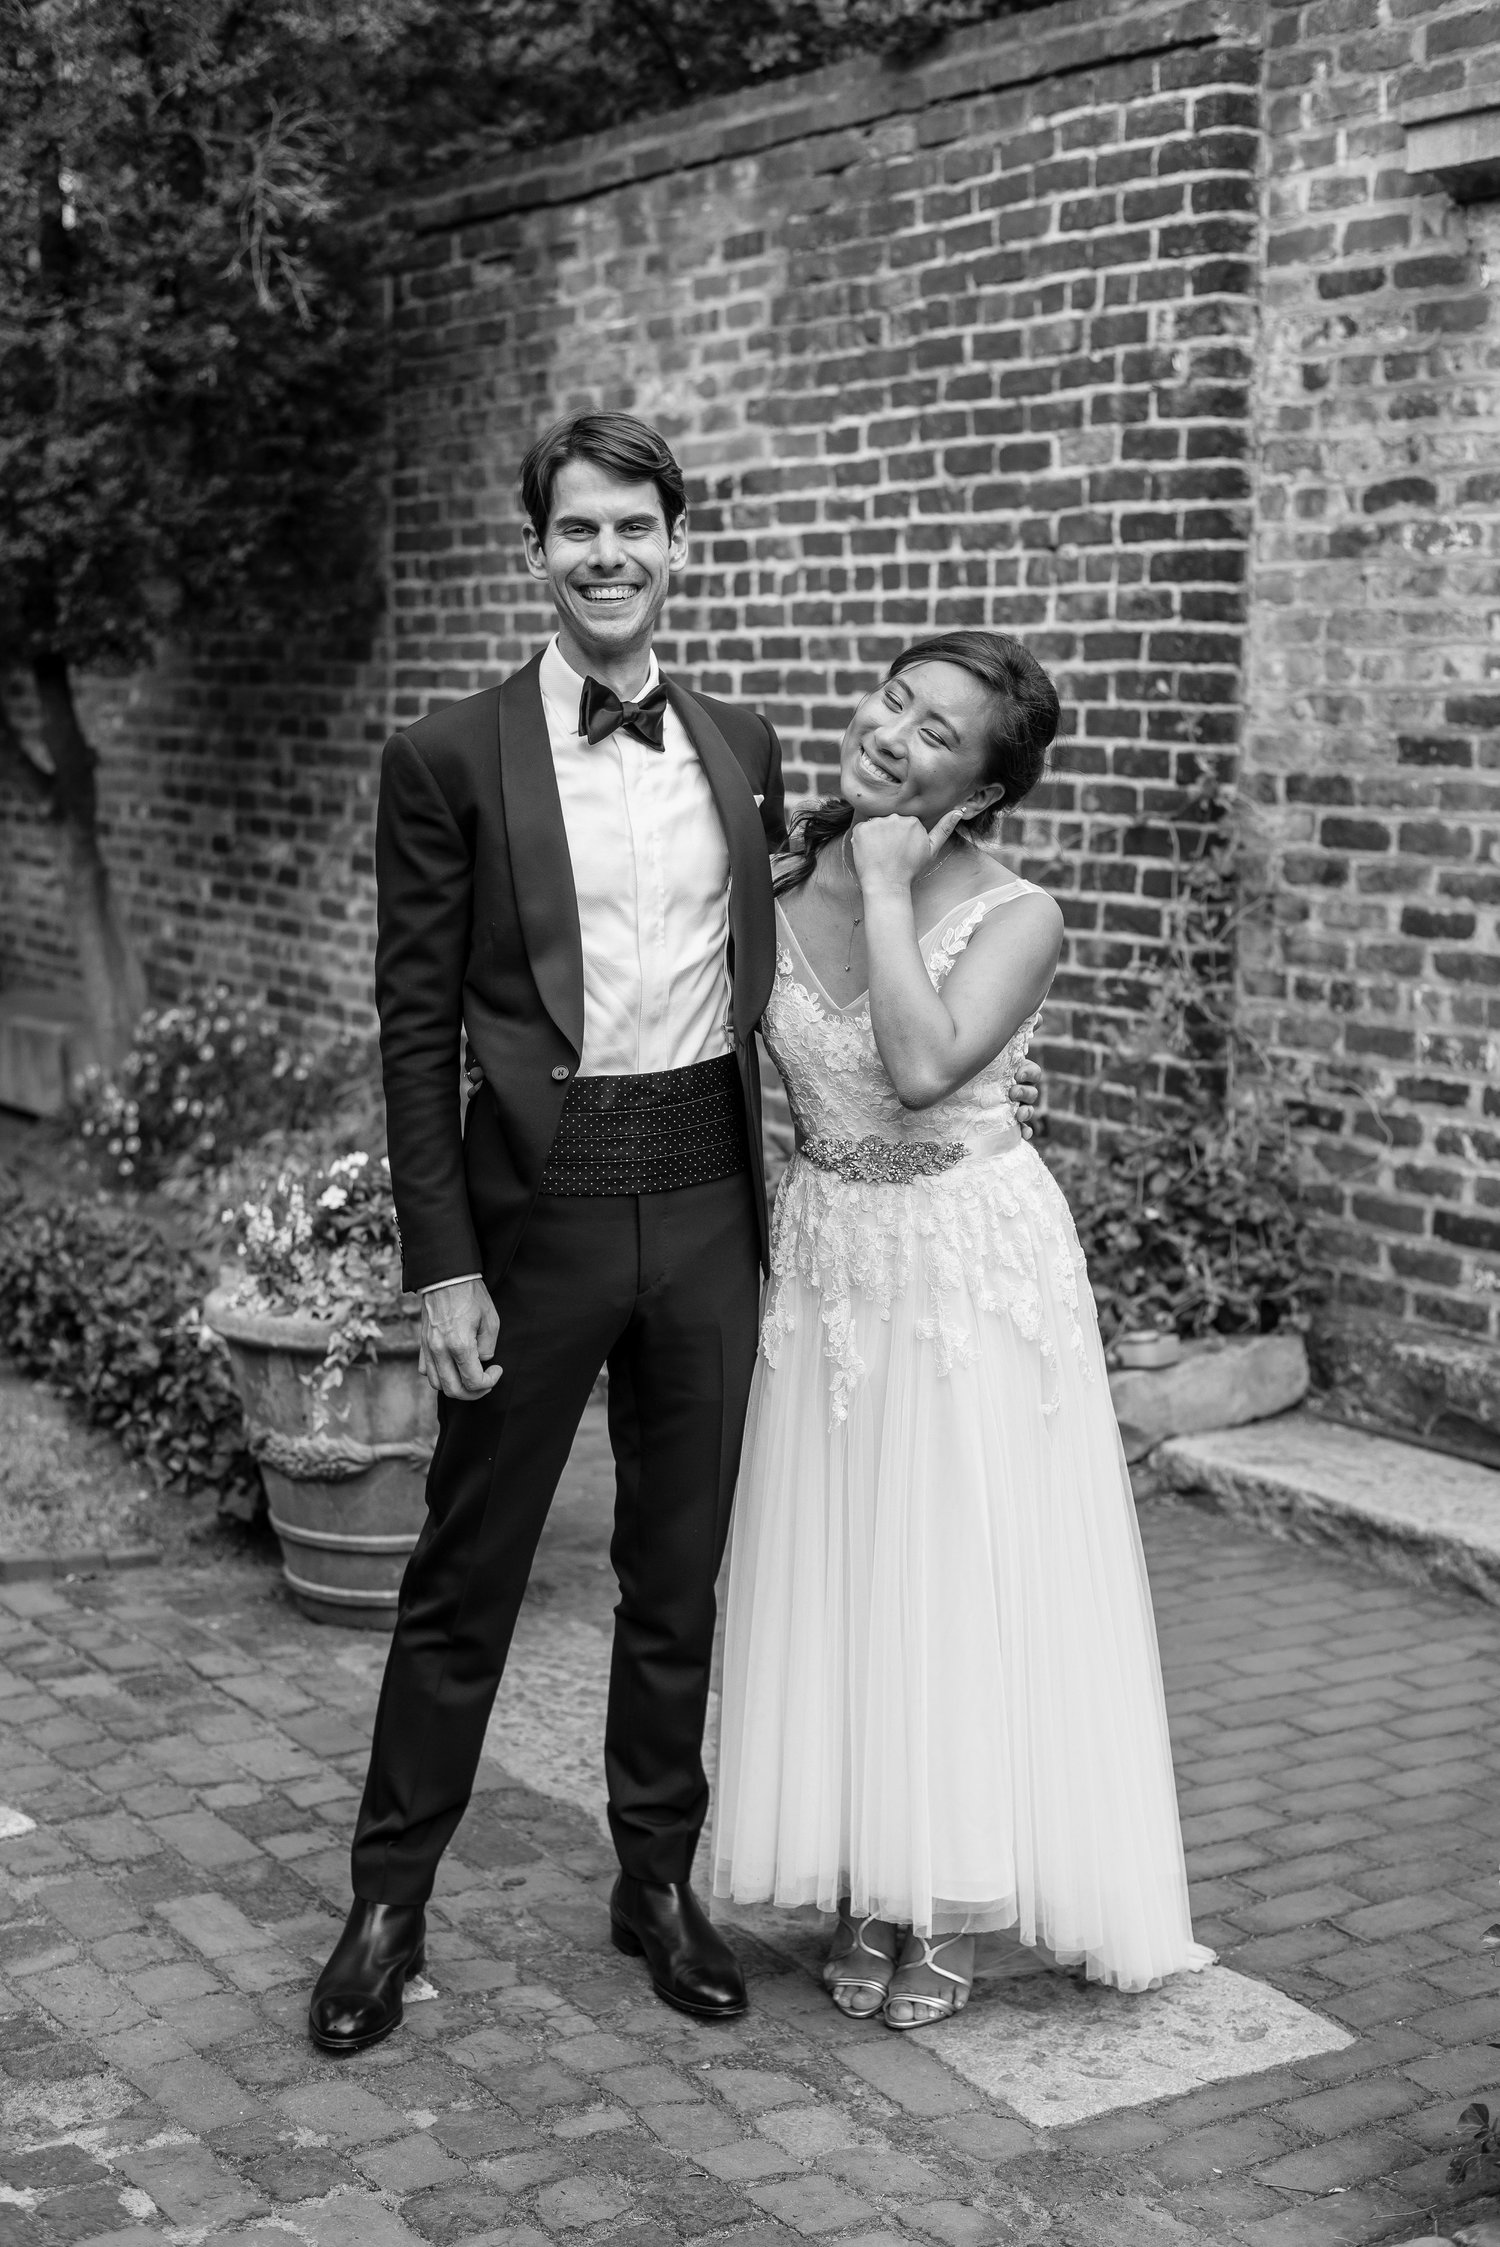 Ben and Christina smile after their wedding at the Poe Museum in Richmond Virginia